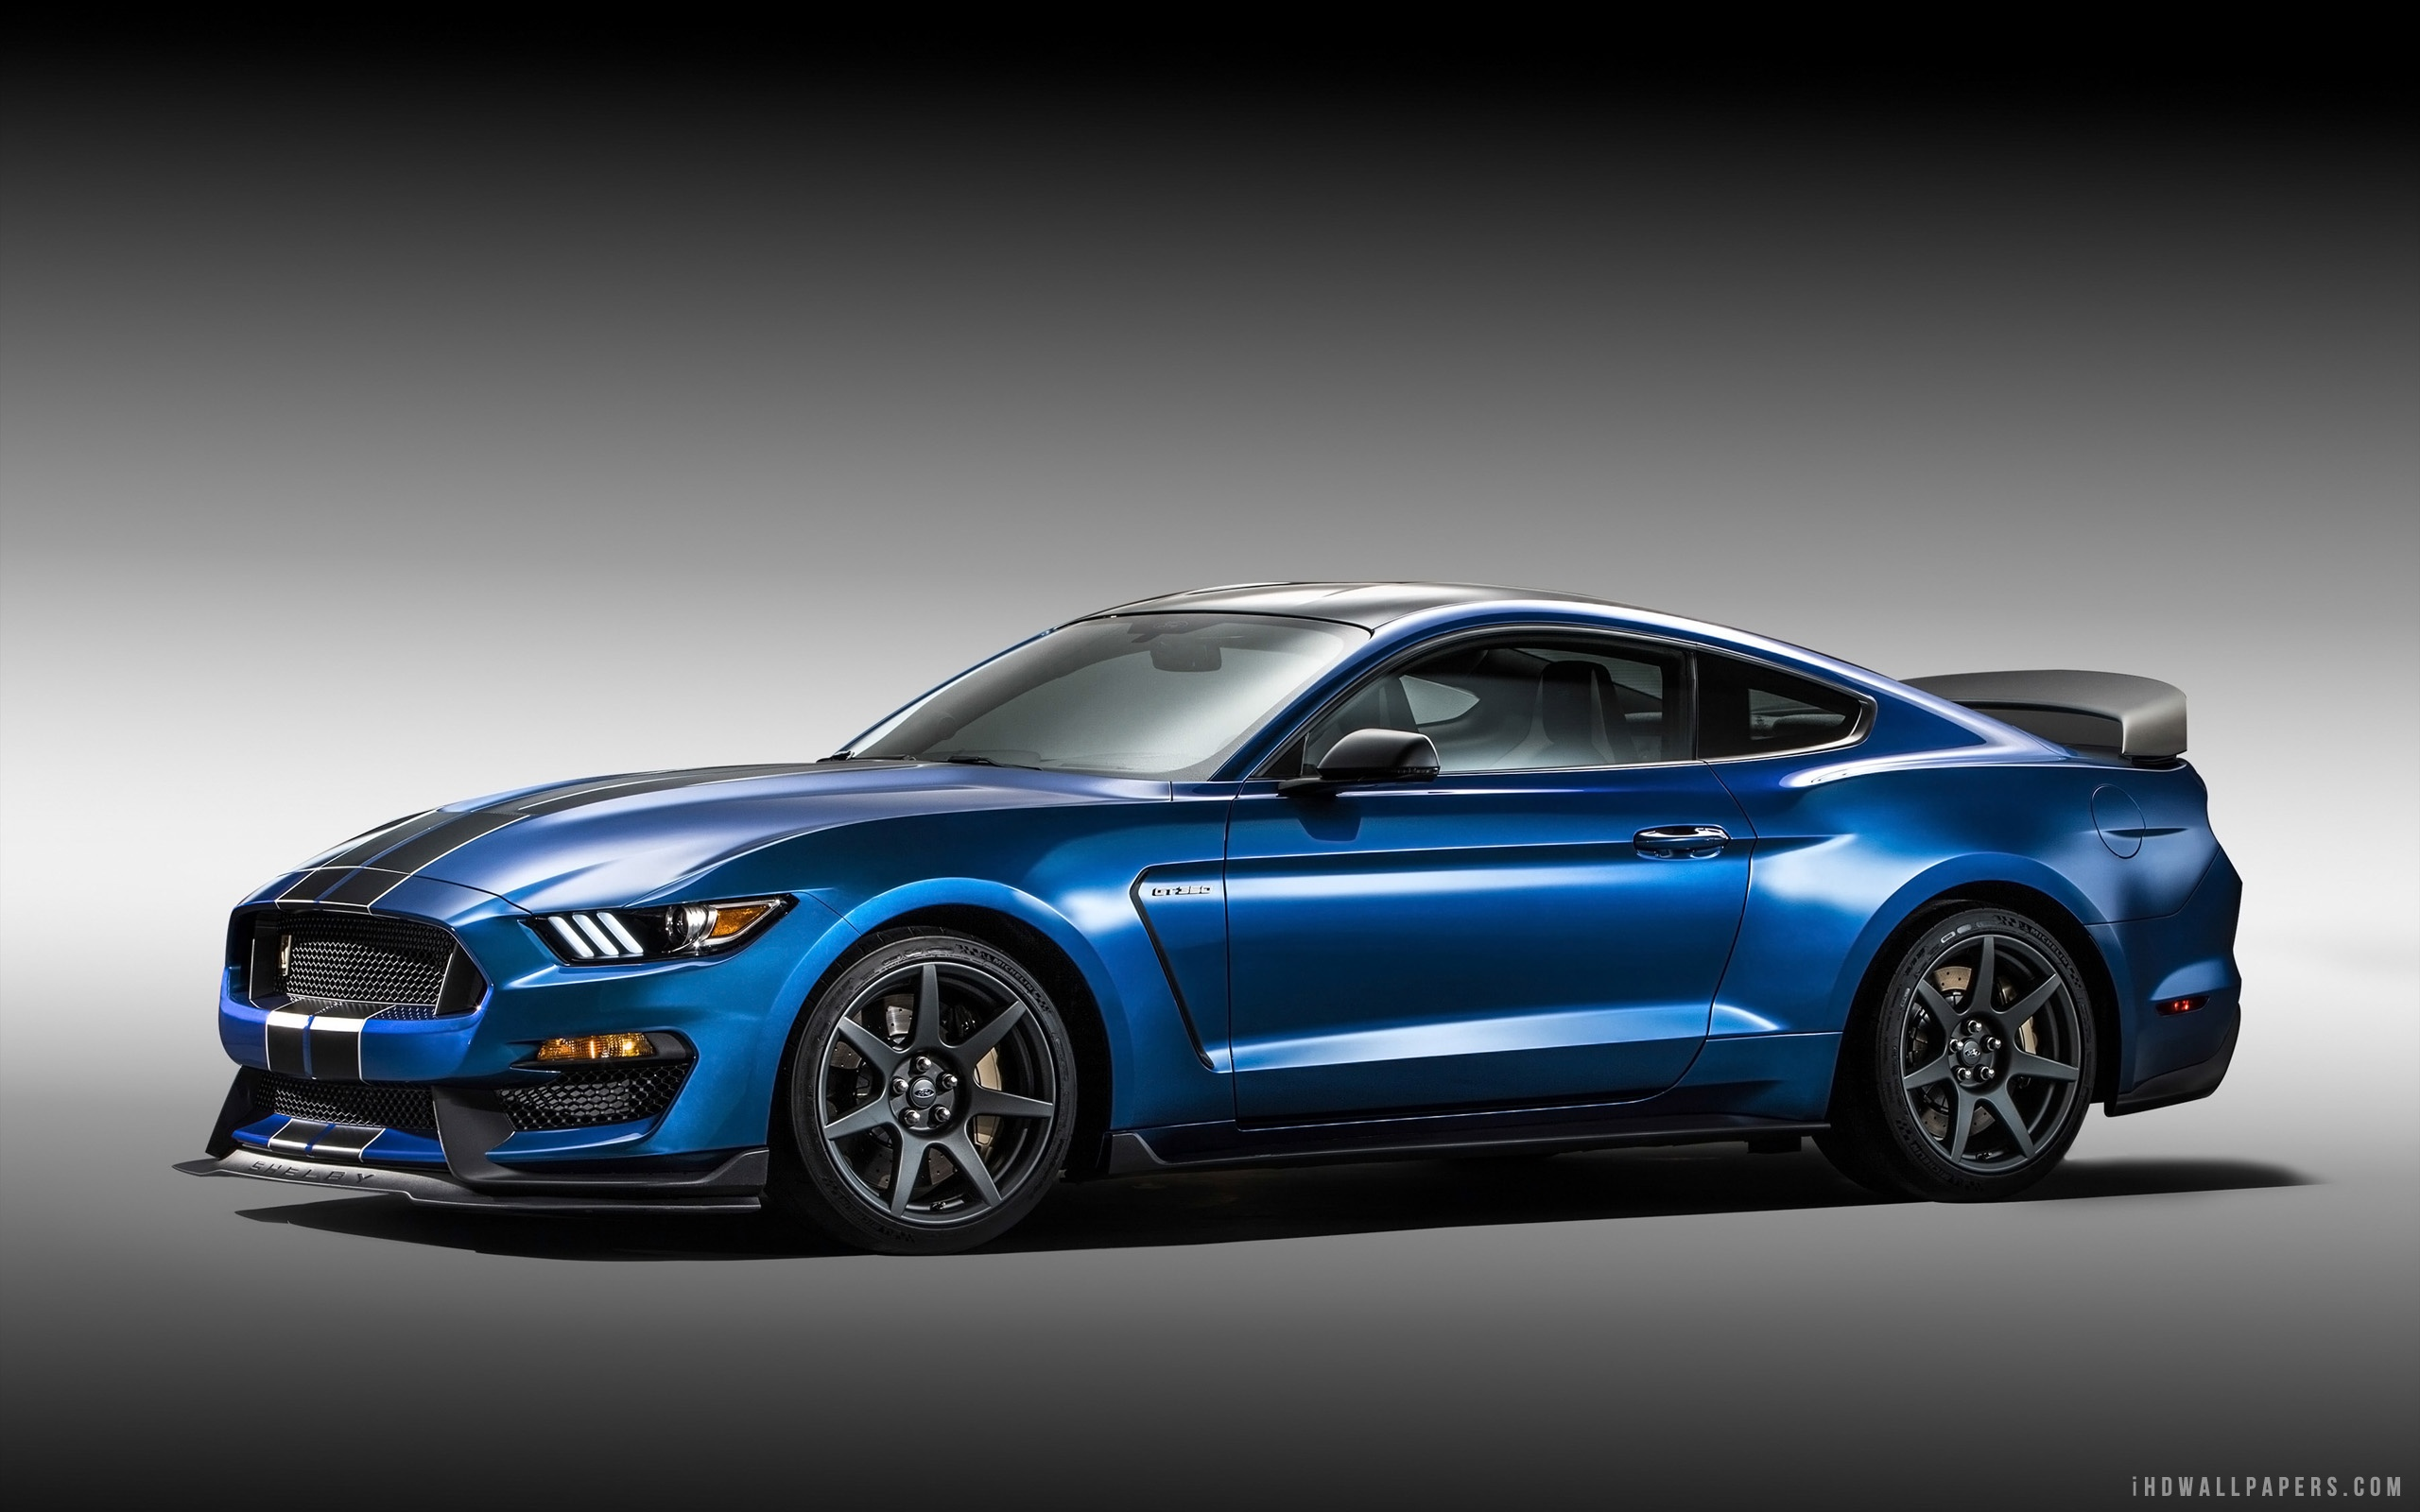 2560x1600 - Shelby Mustang GT 350 Wallpapers 31